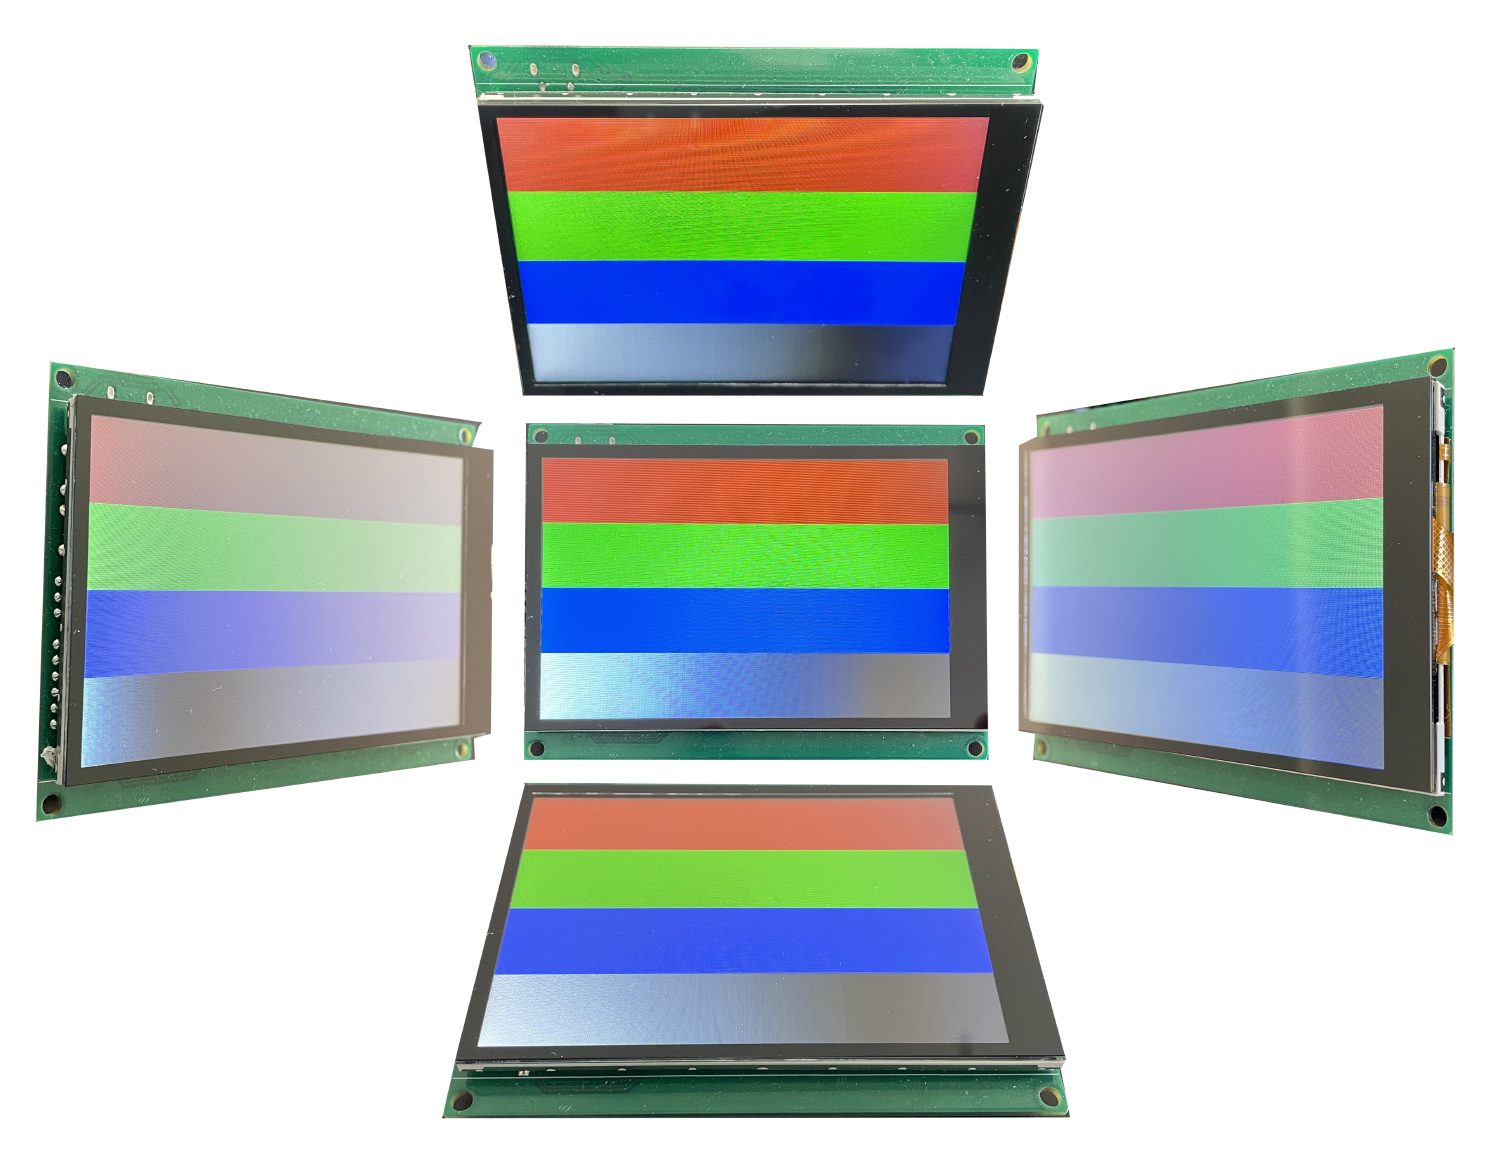 Viewing angles of the Nscreen32 board's display